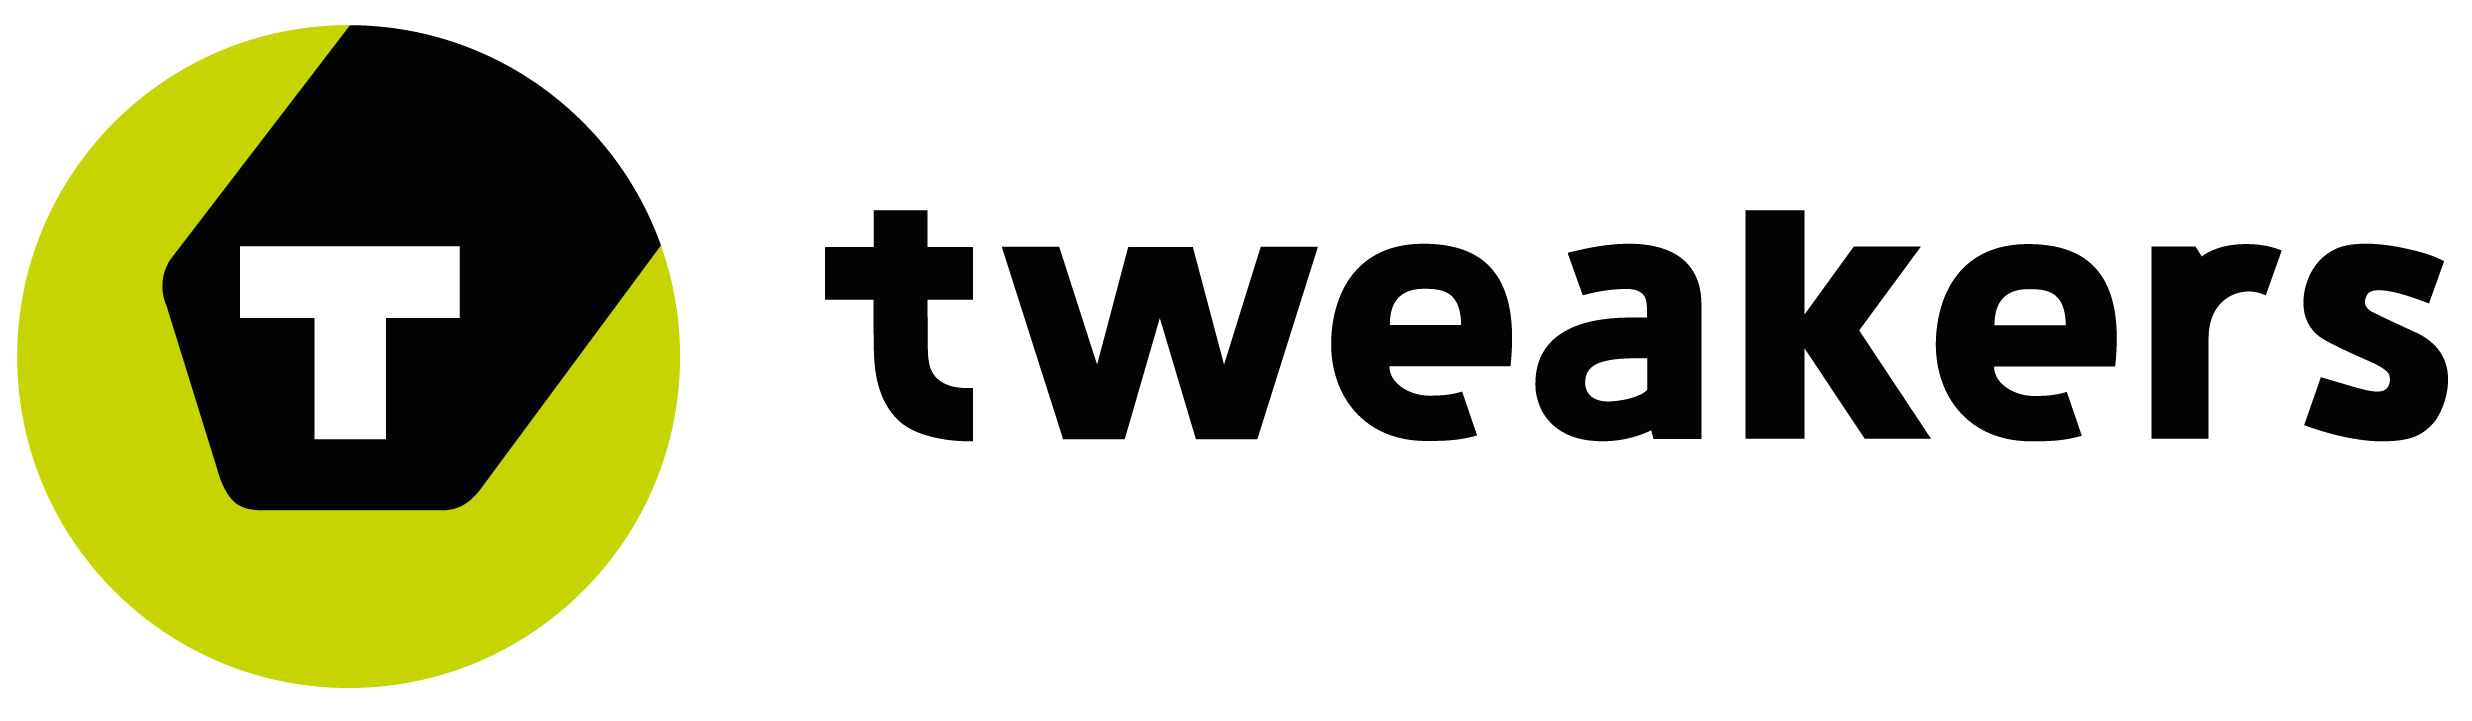 tweakers logo vector.png